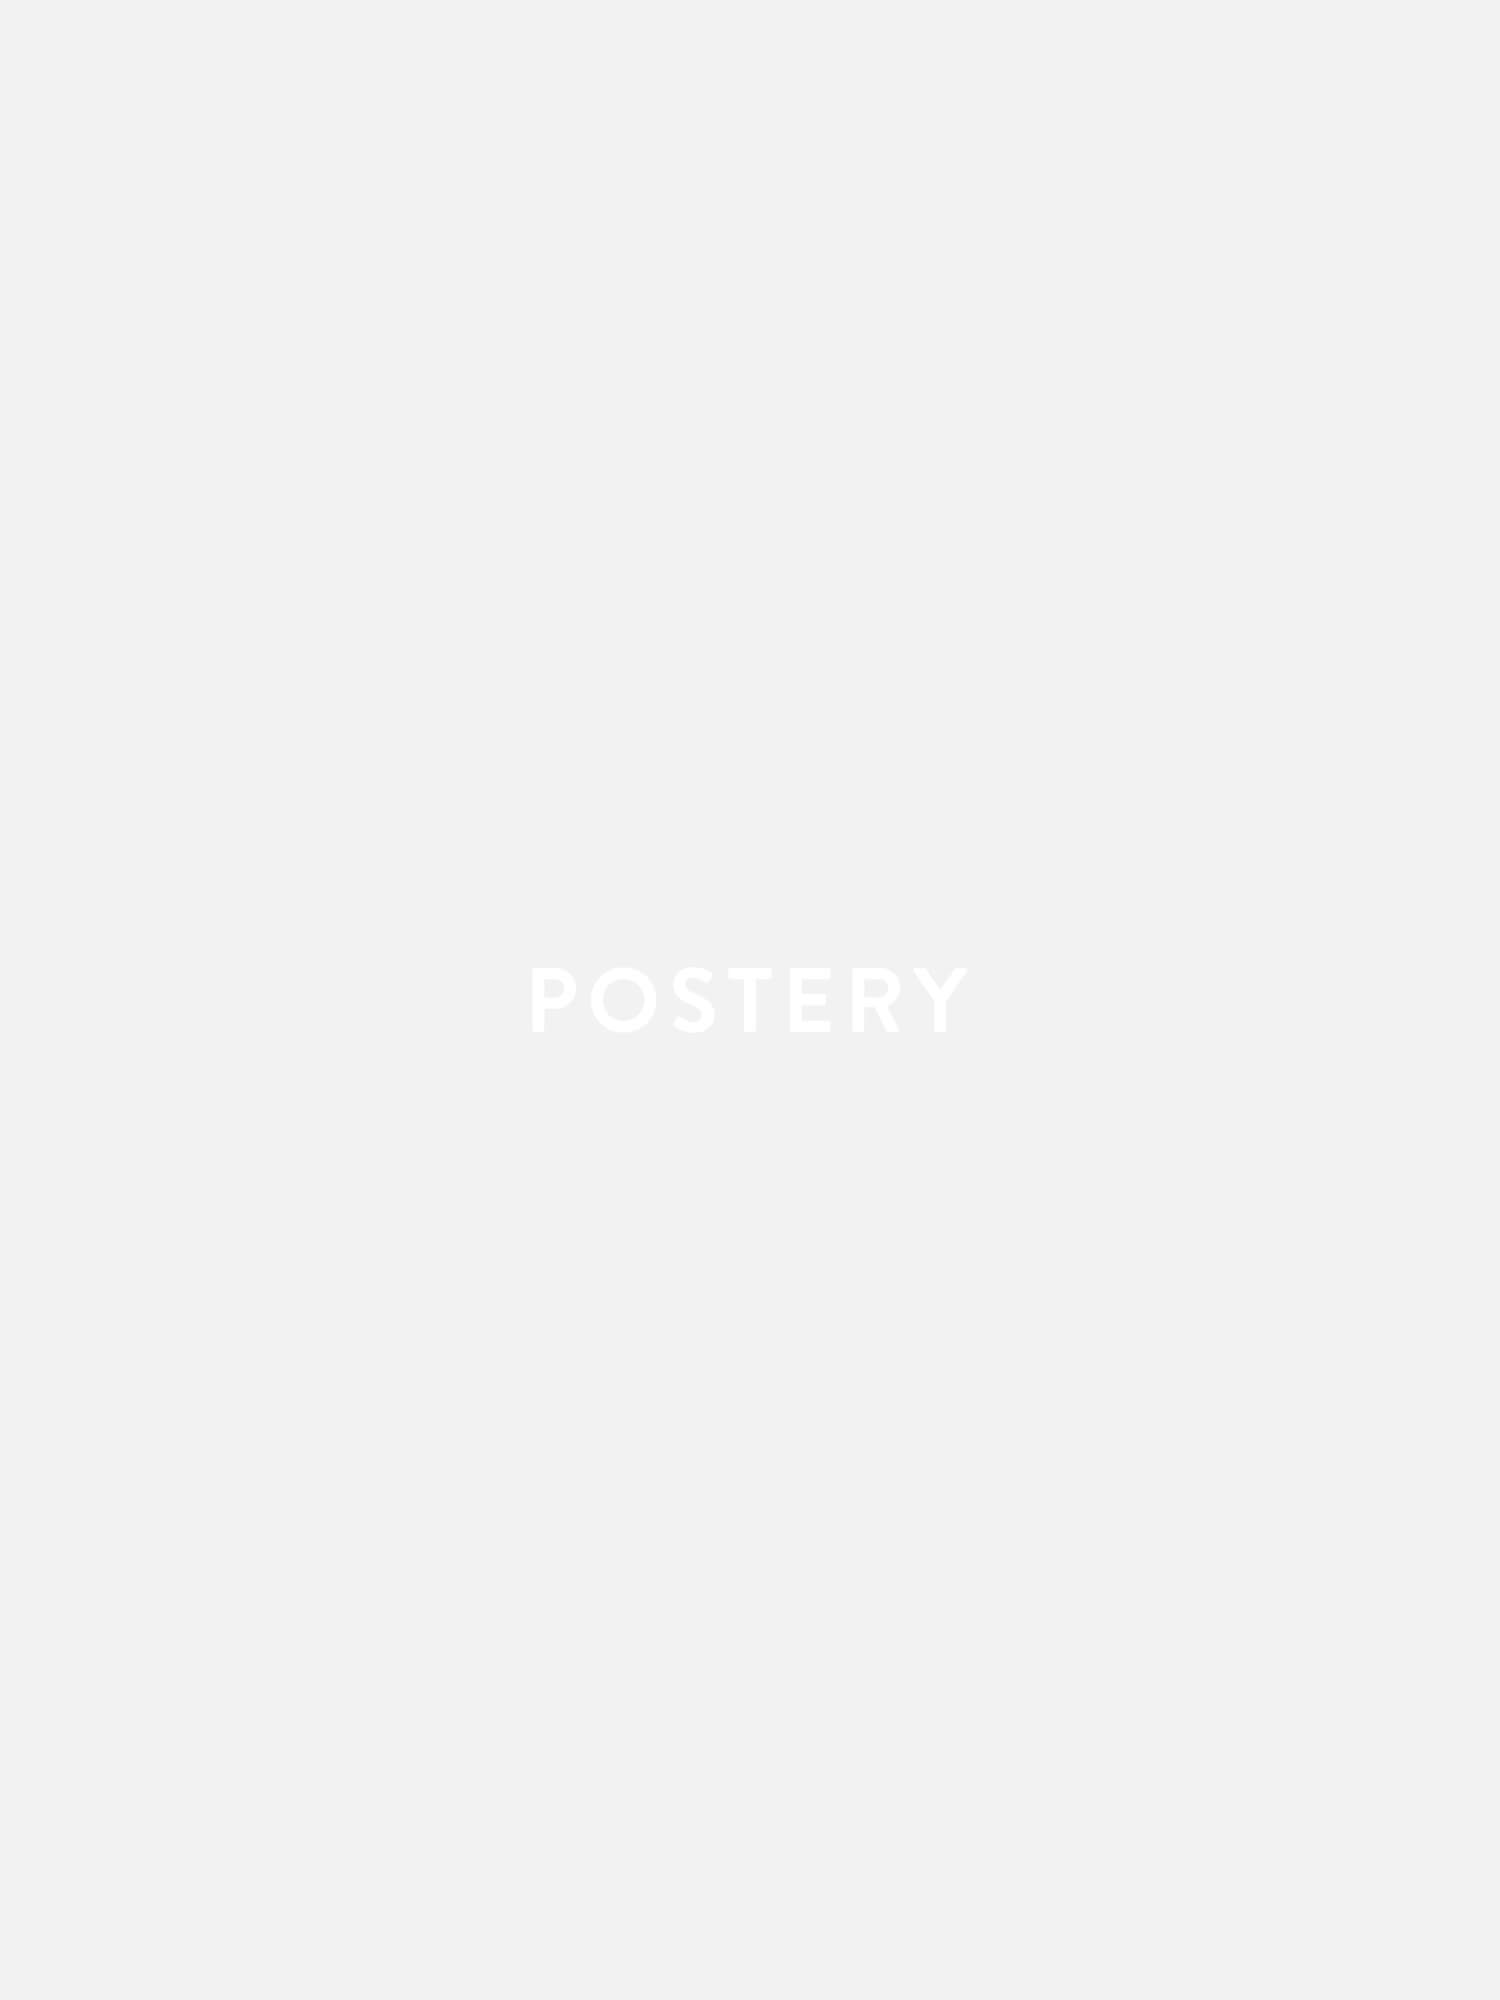 Edible Mushrooms Poster